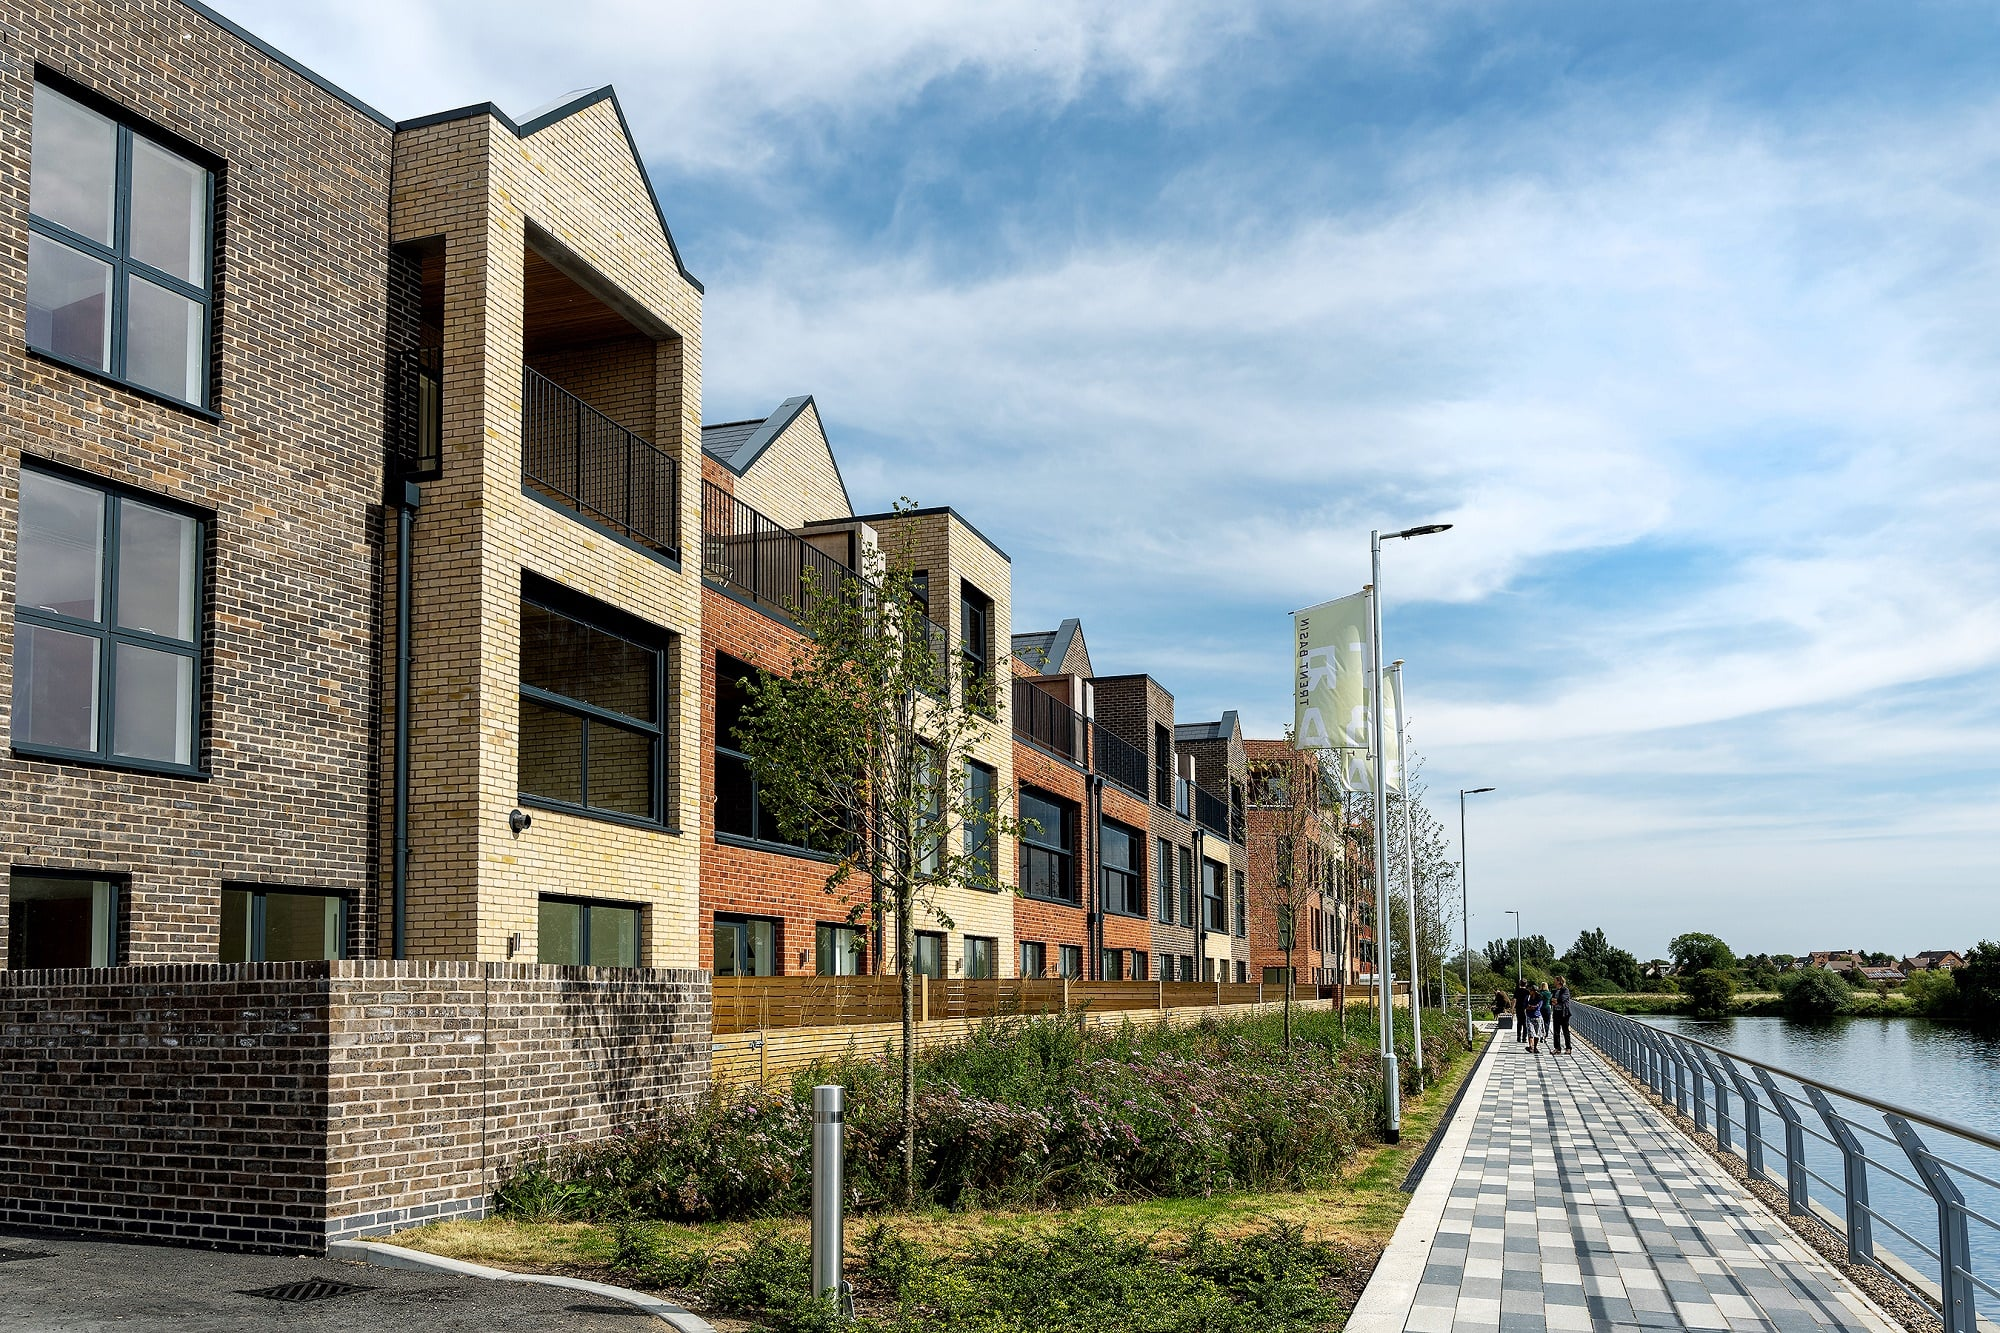 Trent Basins Riverside Homes in Phase Two